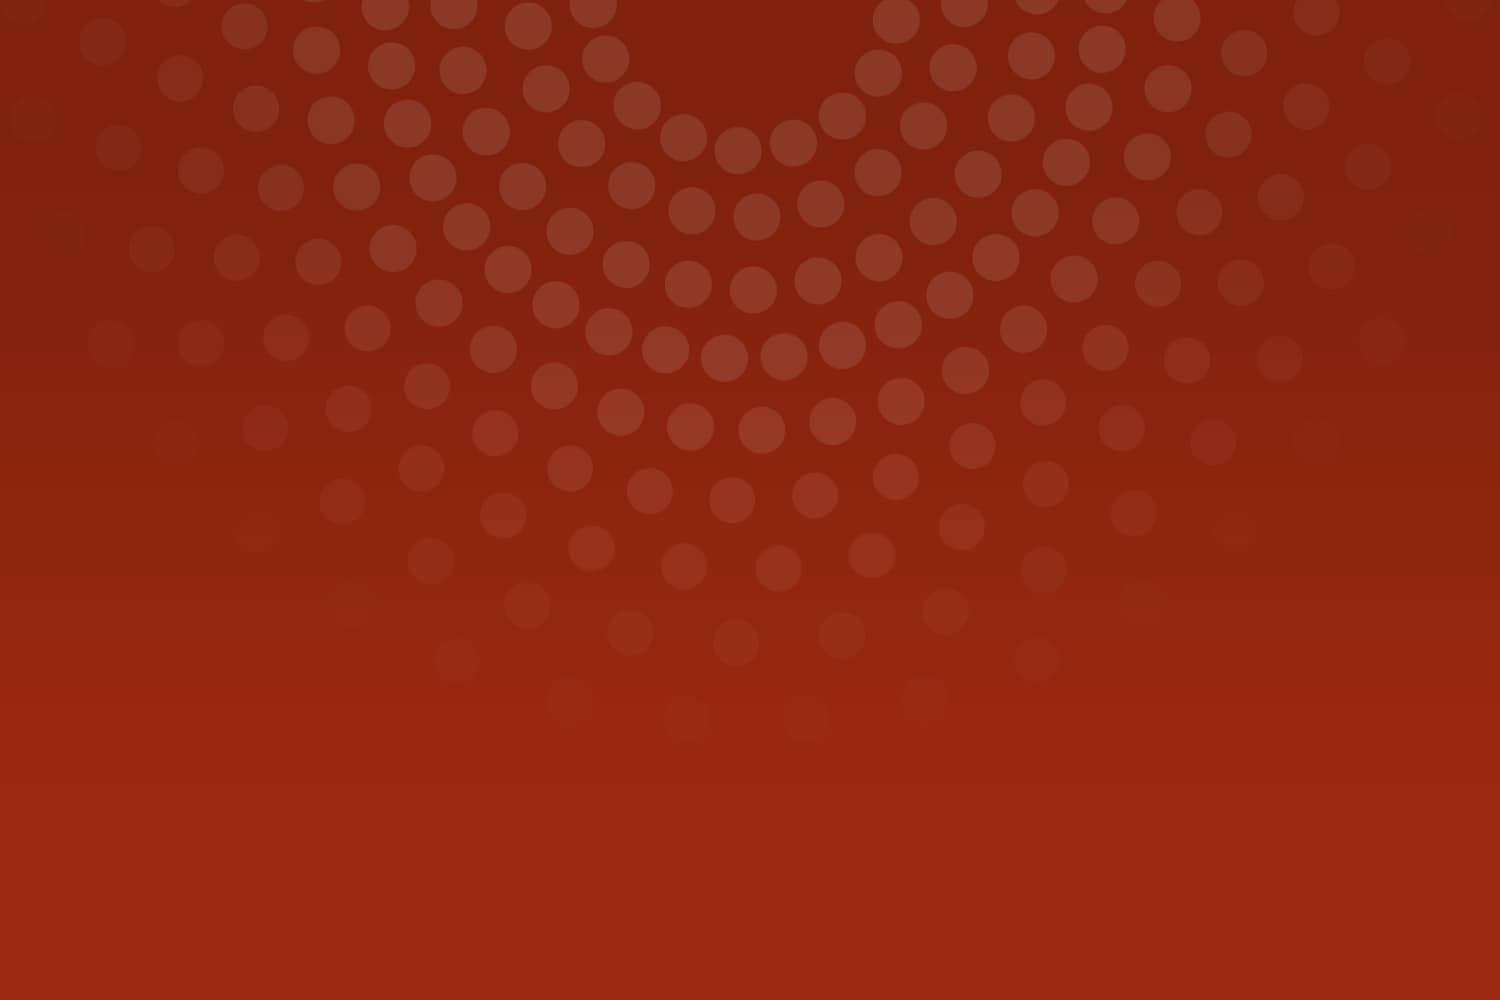 Abstract radiance art on red background